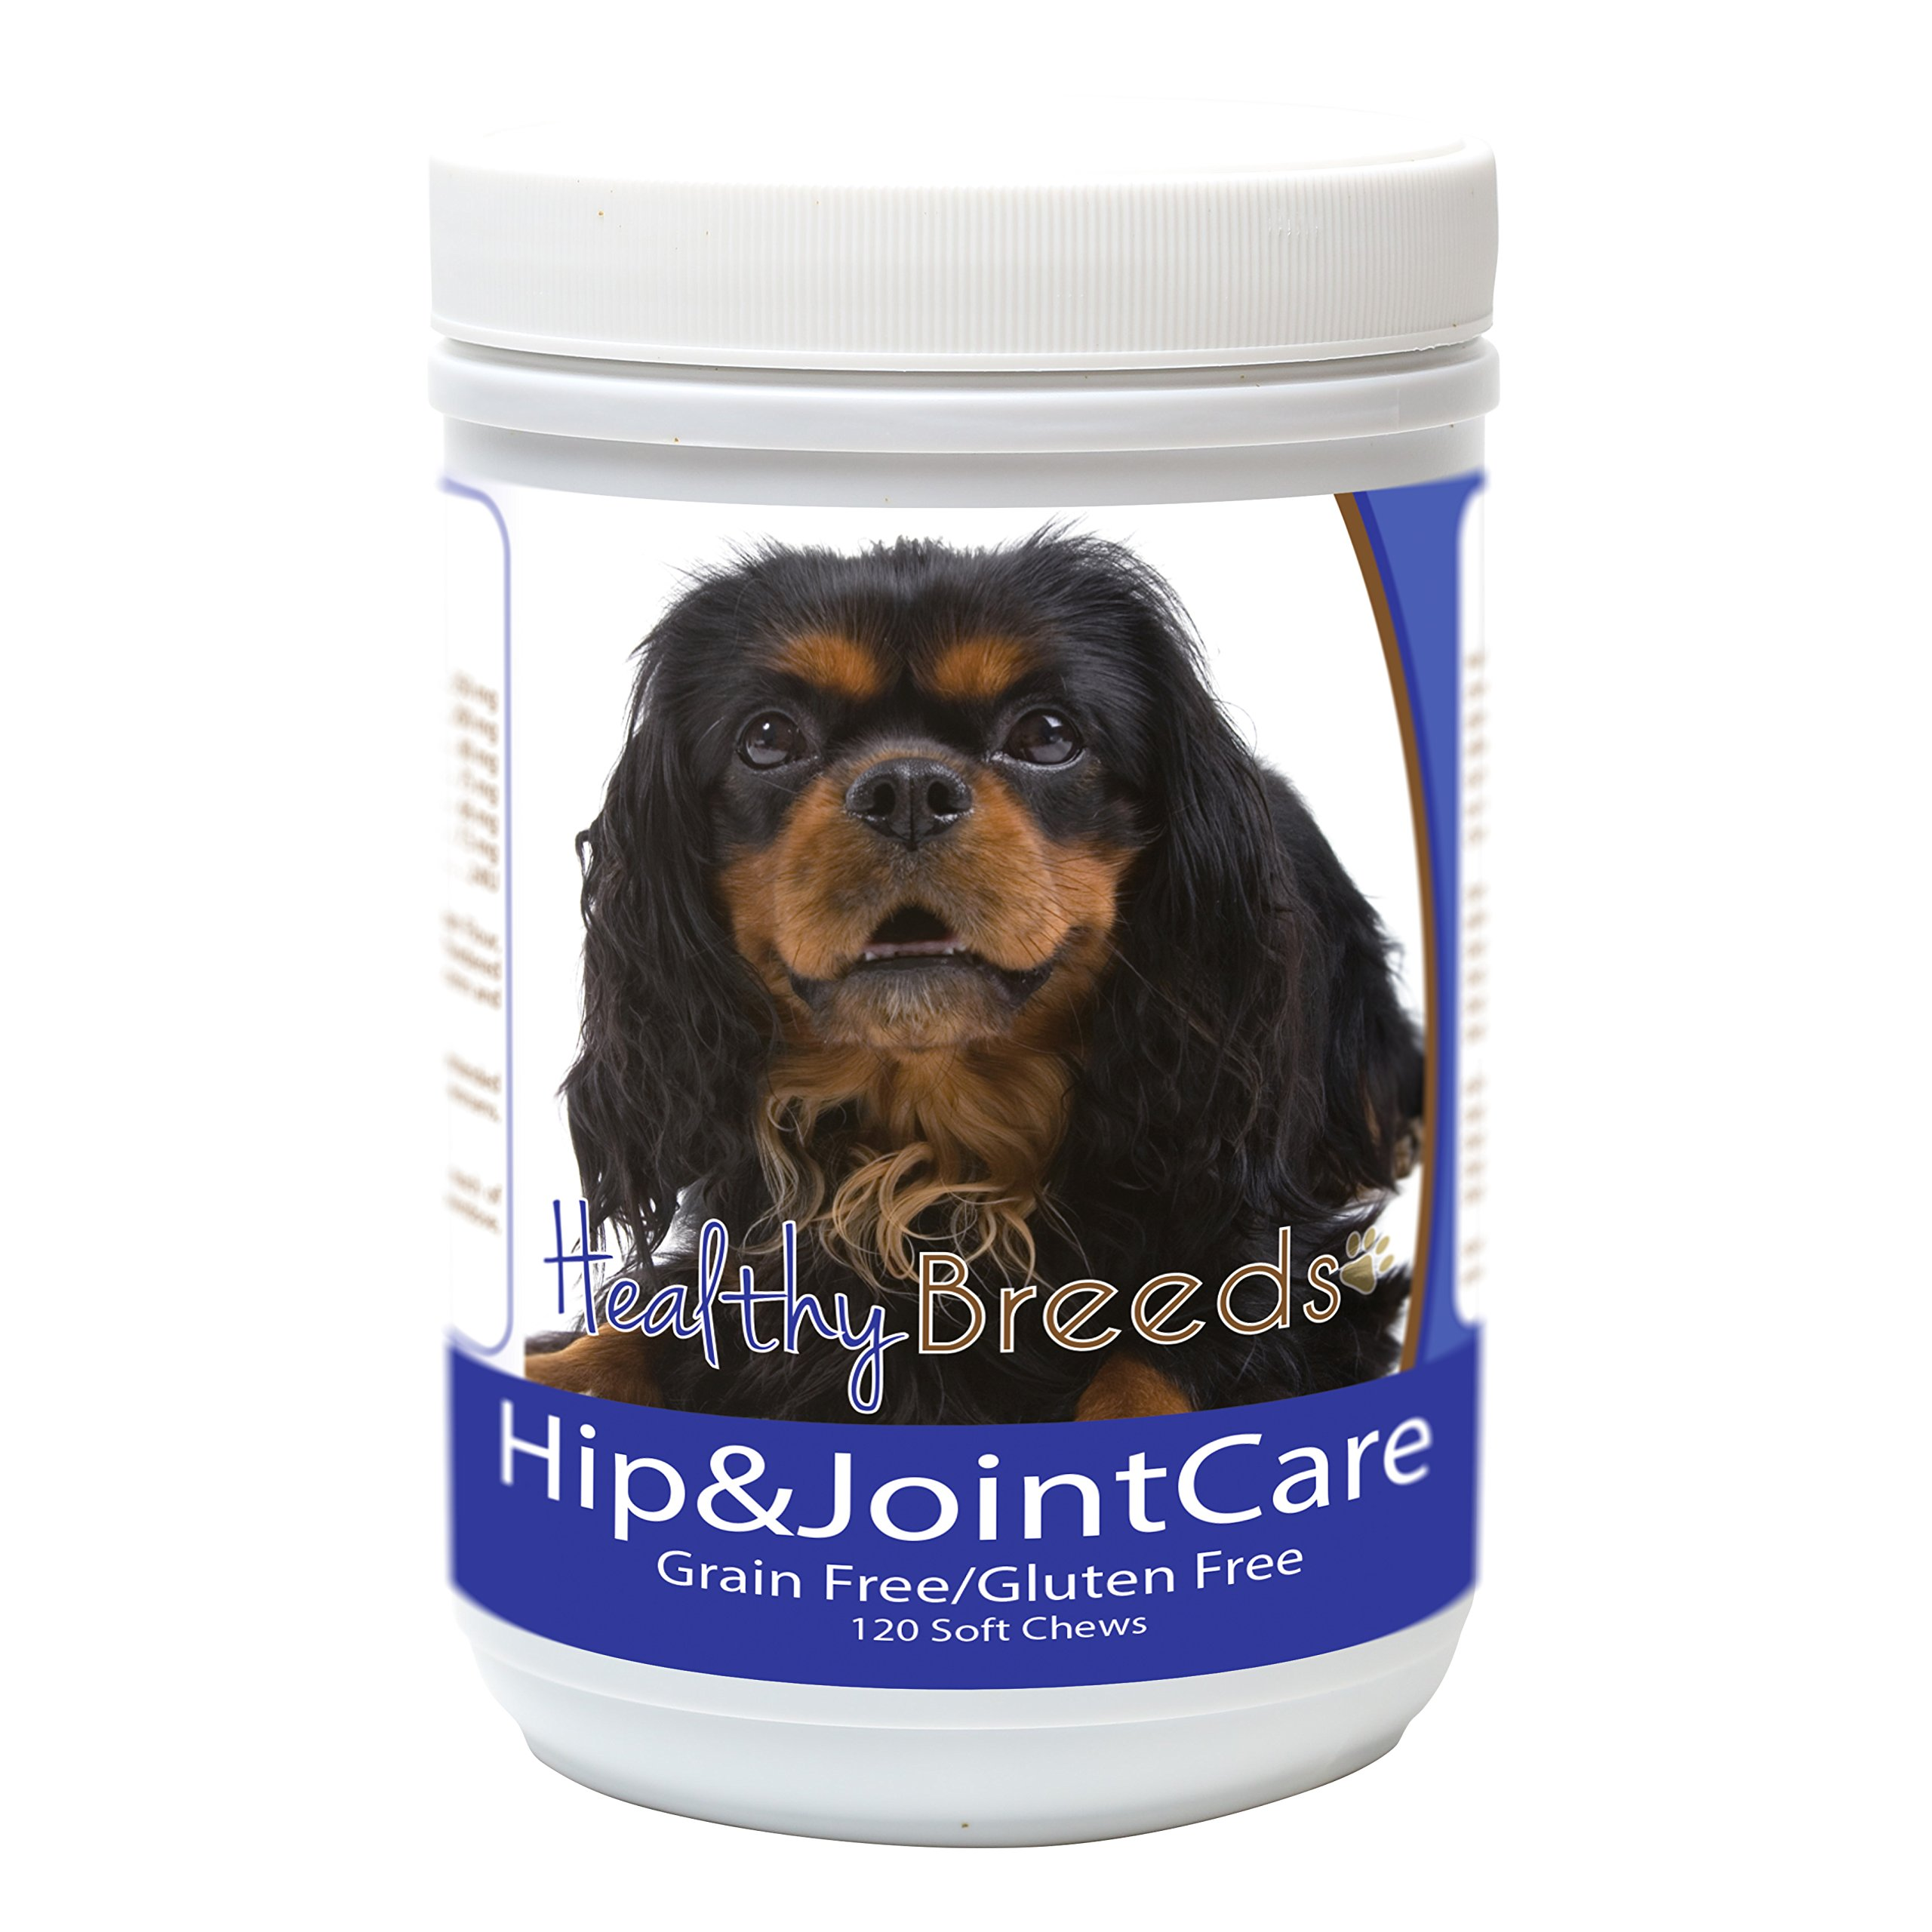 Healthy Breeds Glucosamine Chondroitin for Dogs for English Toy Spaniel - Over 200 Breeds - Bacon Flavor - Gluten & Grain Free - Easier Than Liquid or Pills - 120 Chews